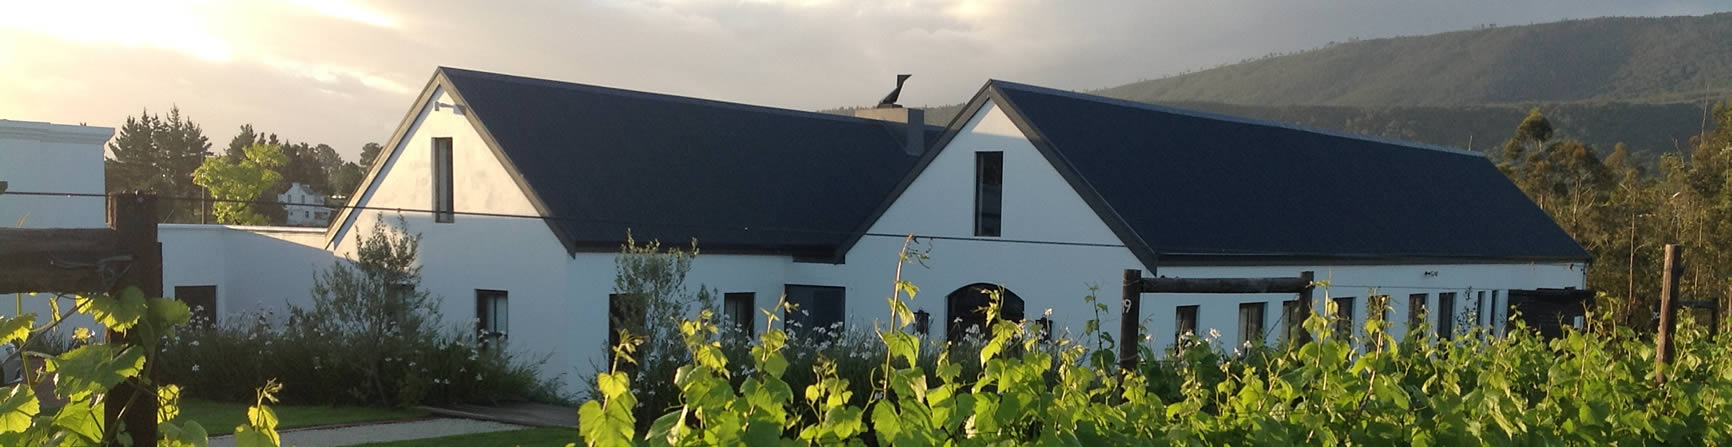 Newstead Wine Farm in Plettenberg Bay